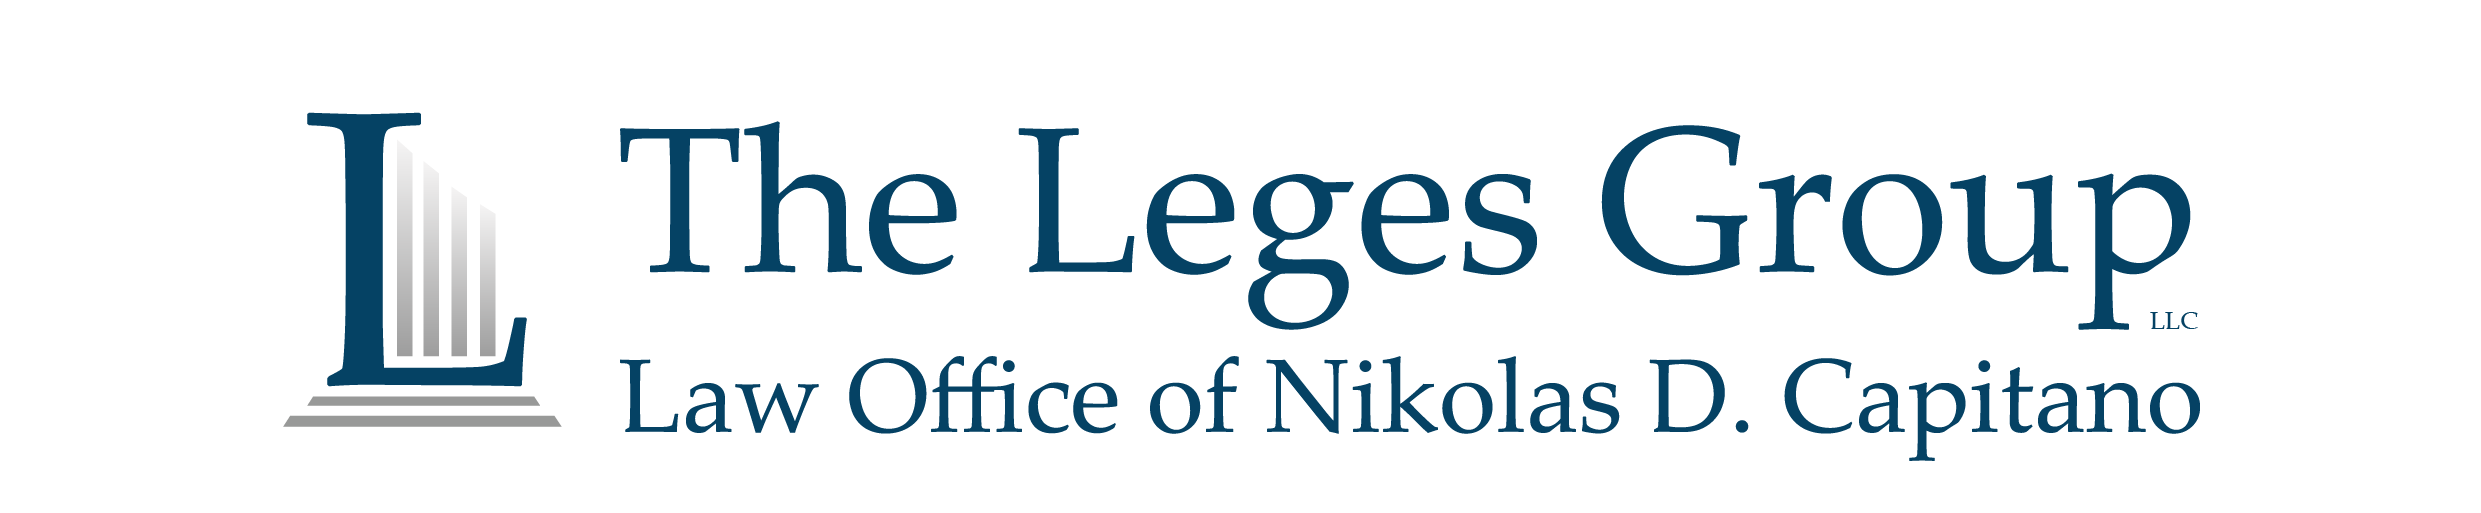 Law Office of Nikolas D. Capitano, The Leges Group LLC